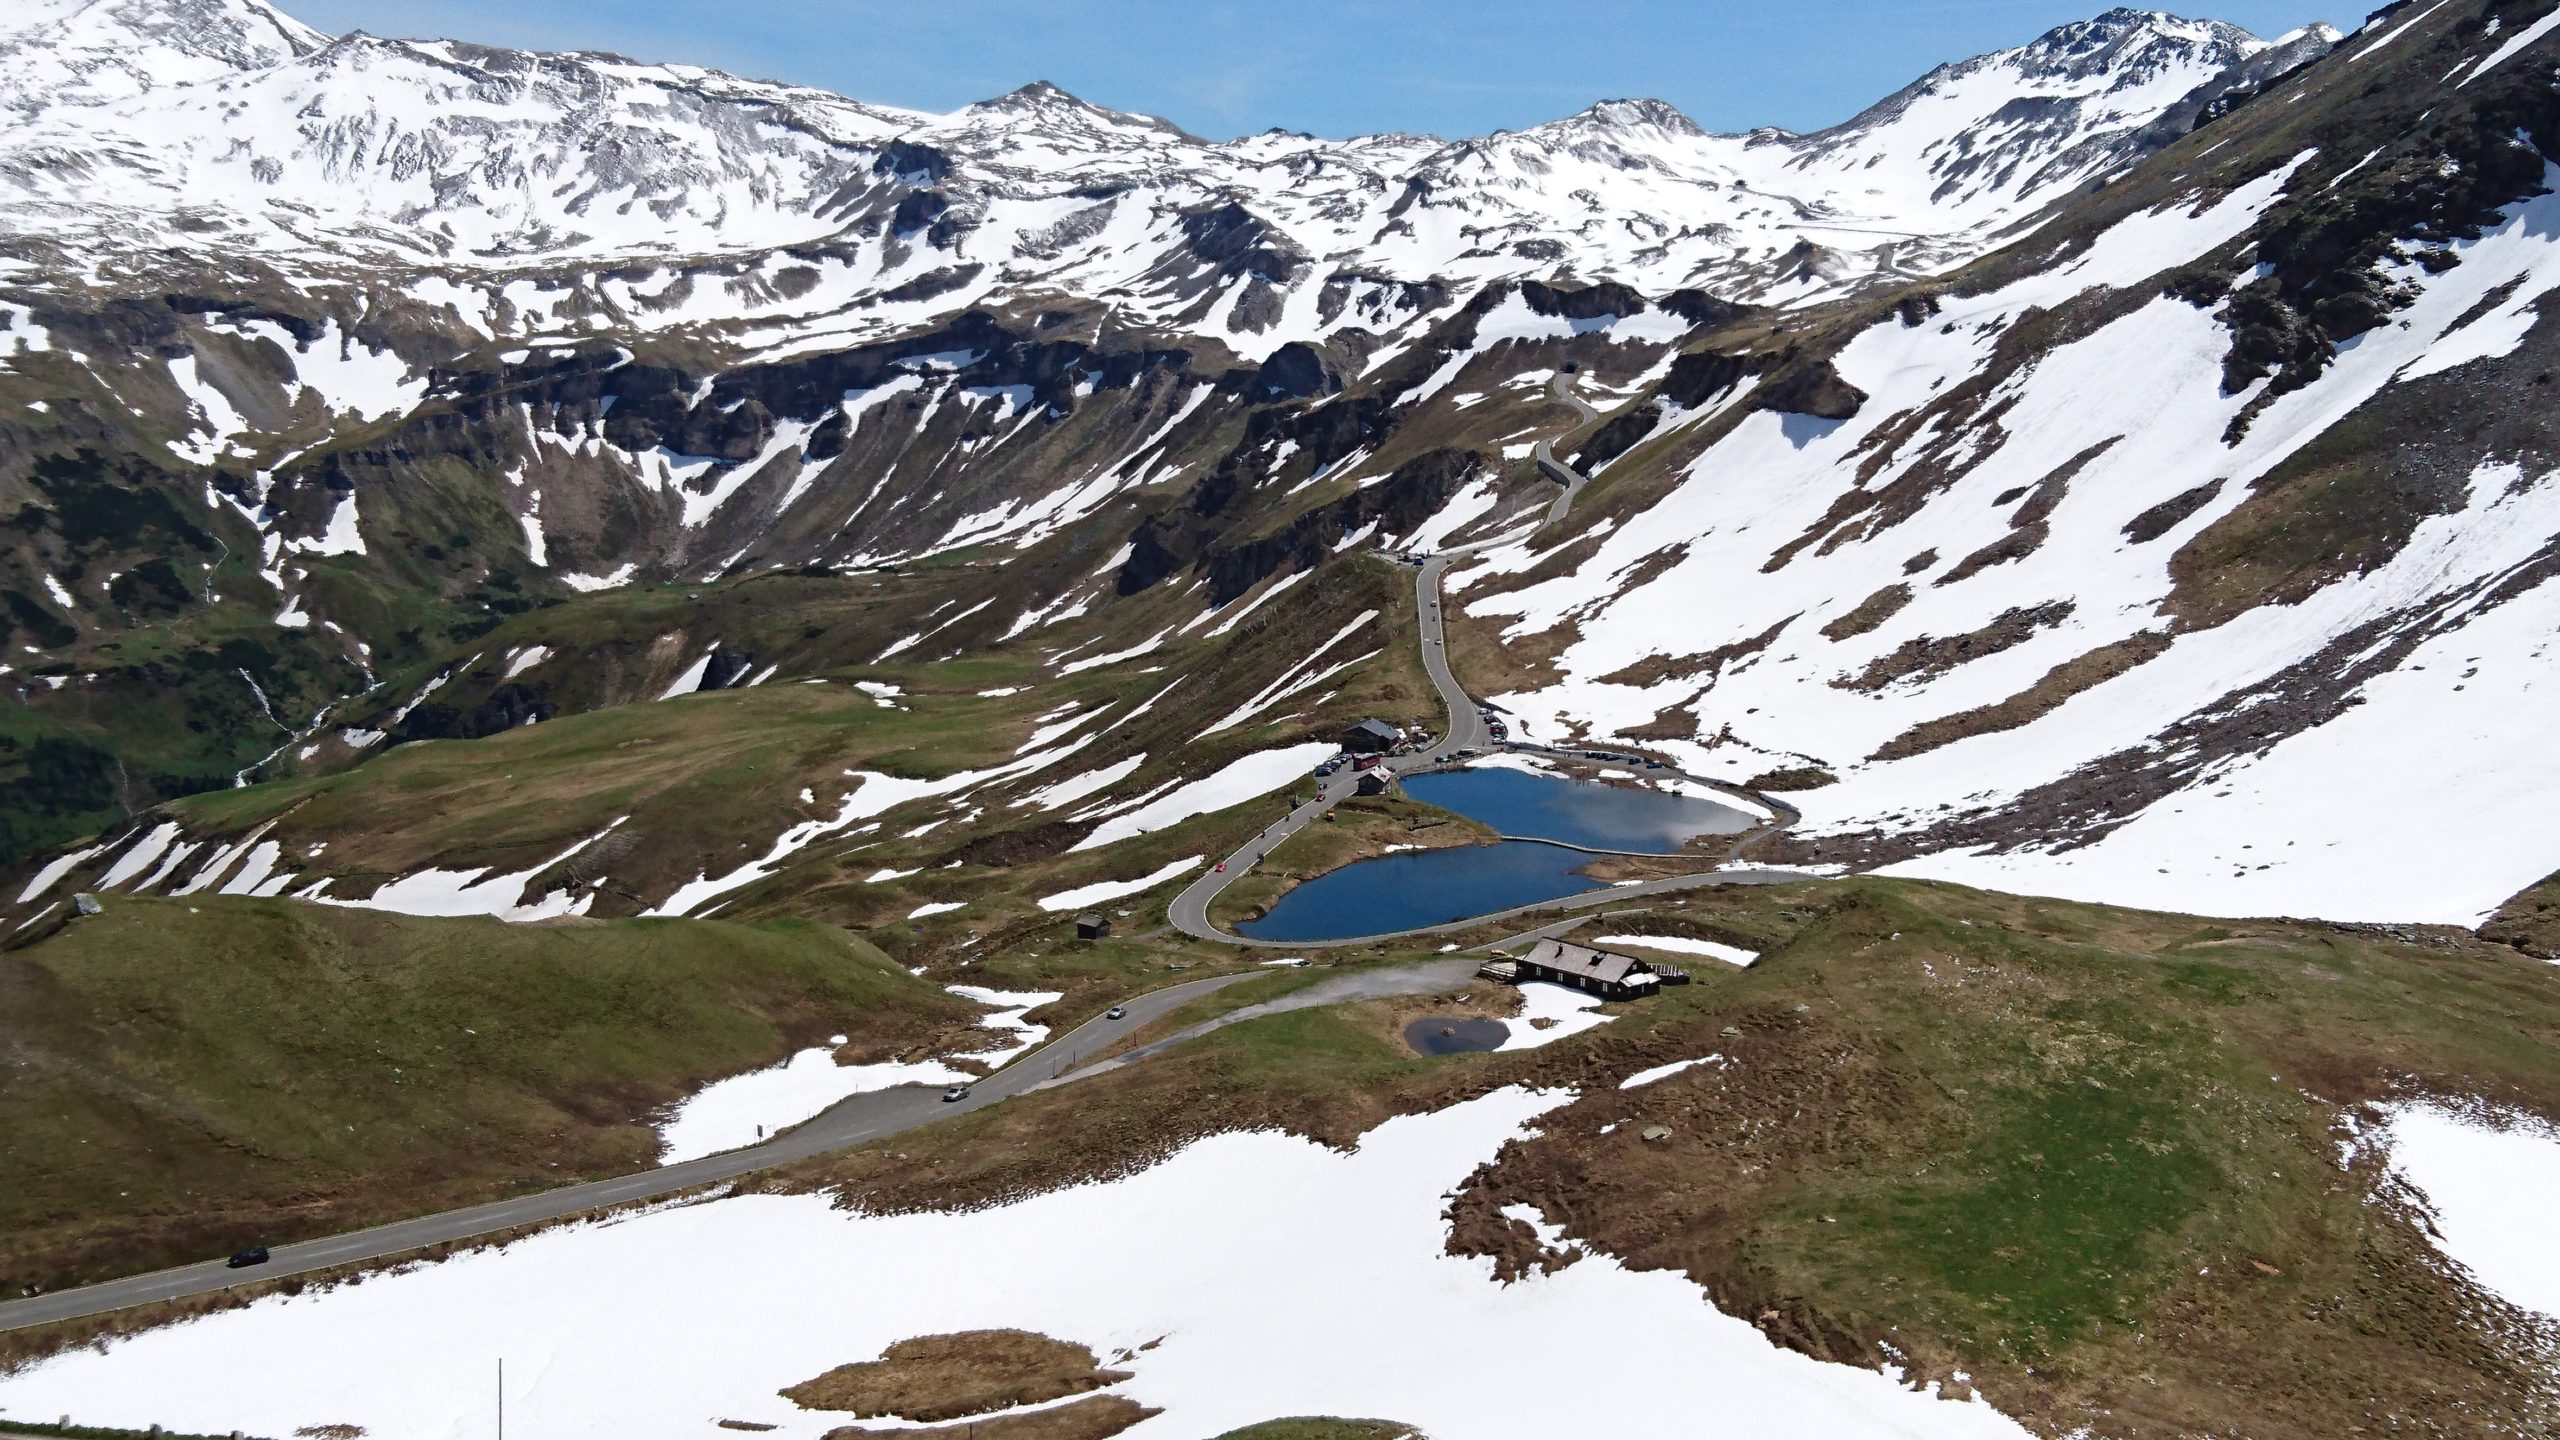 Grossglockner Pass Austria – 20 Countries in 20 Days